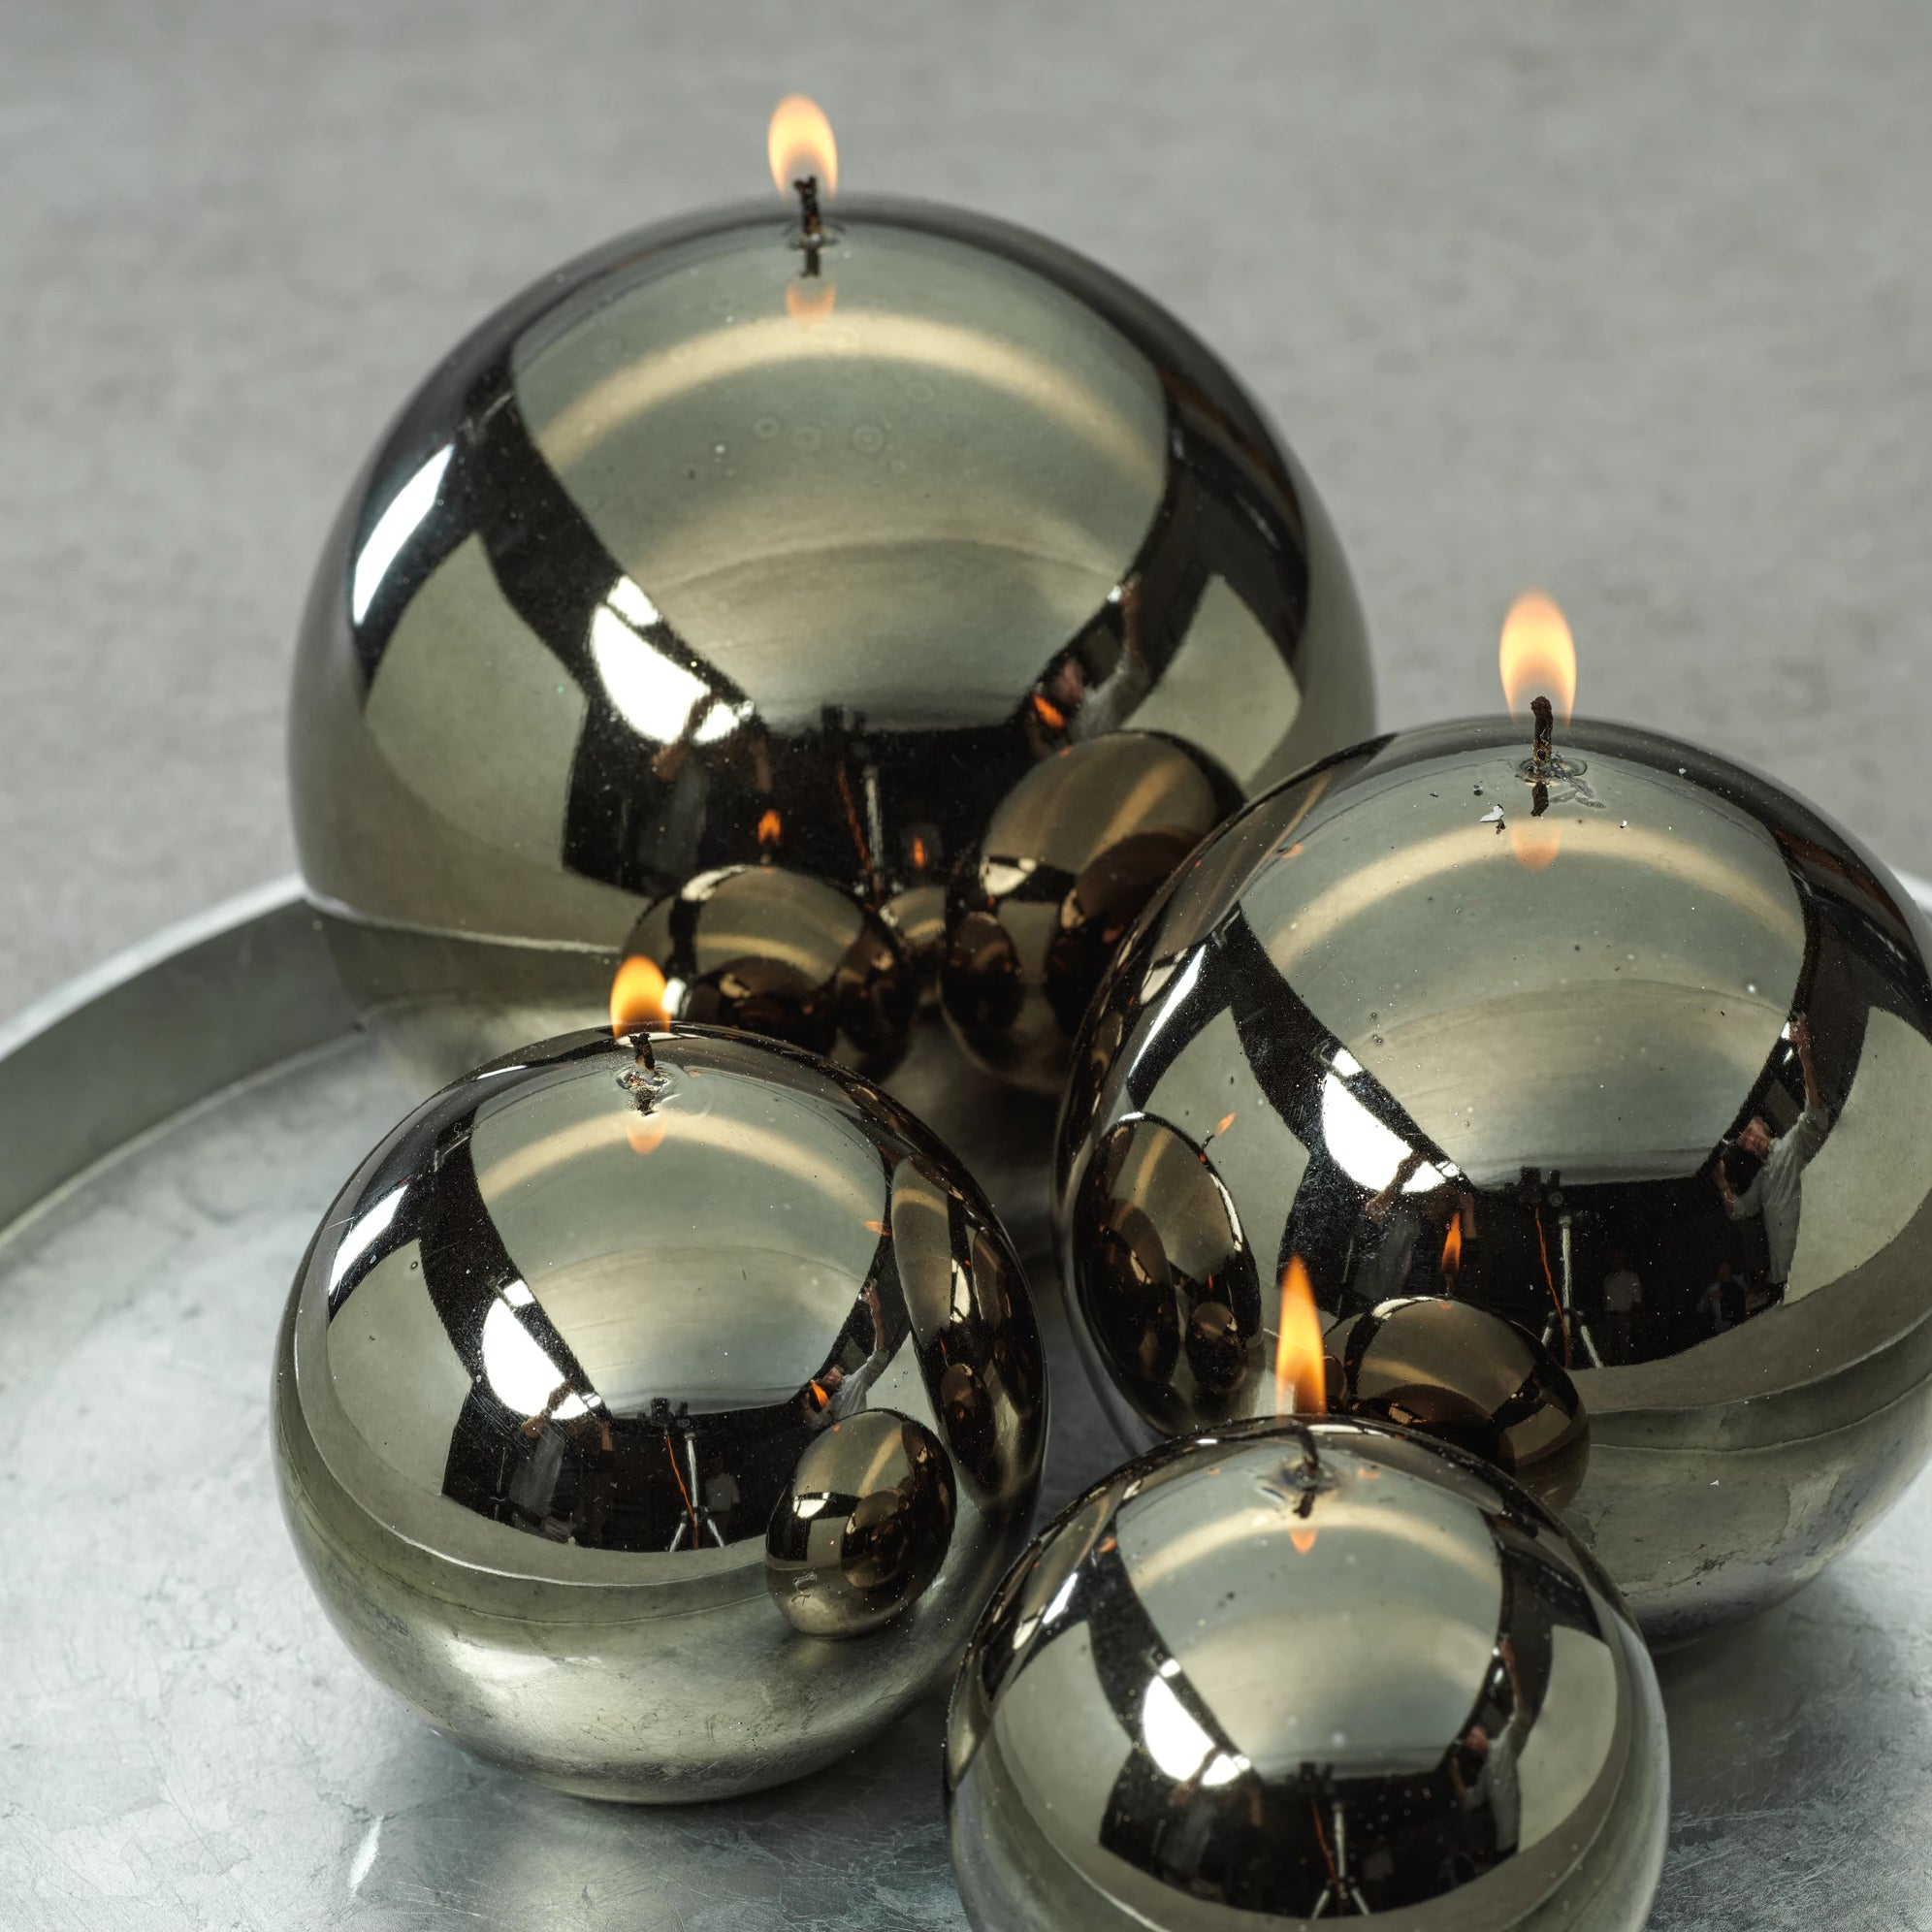 Shiny Metallic Ball Candle - Dark Green